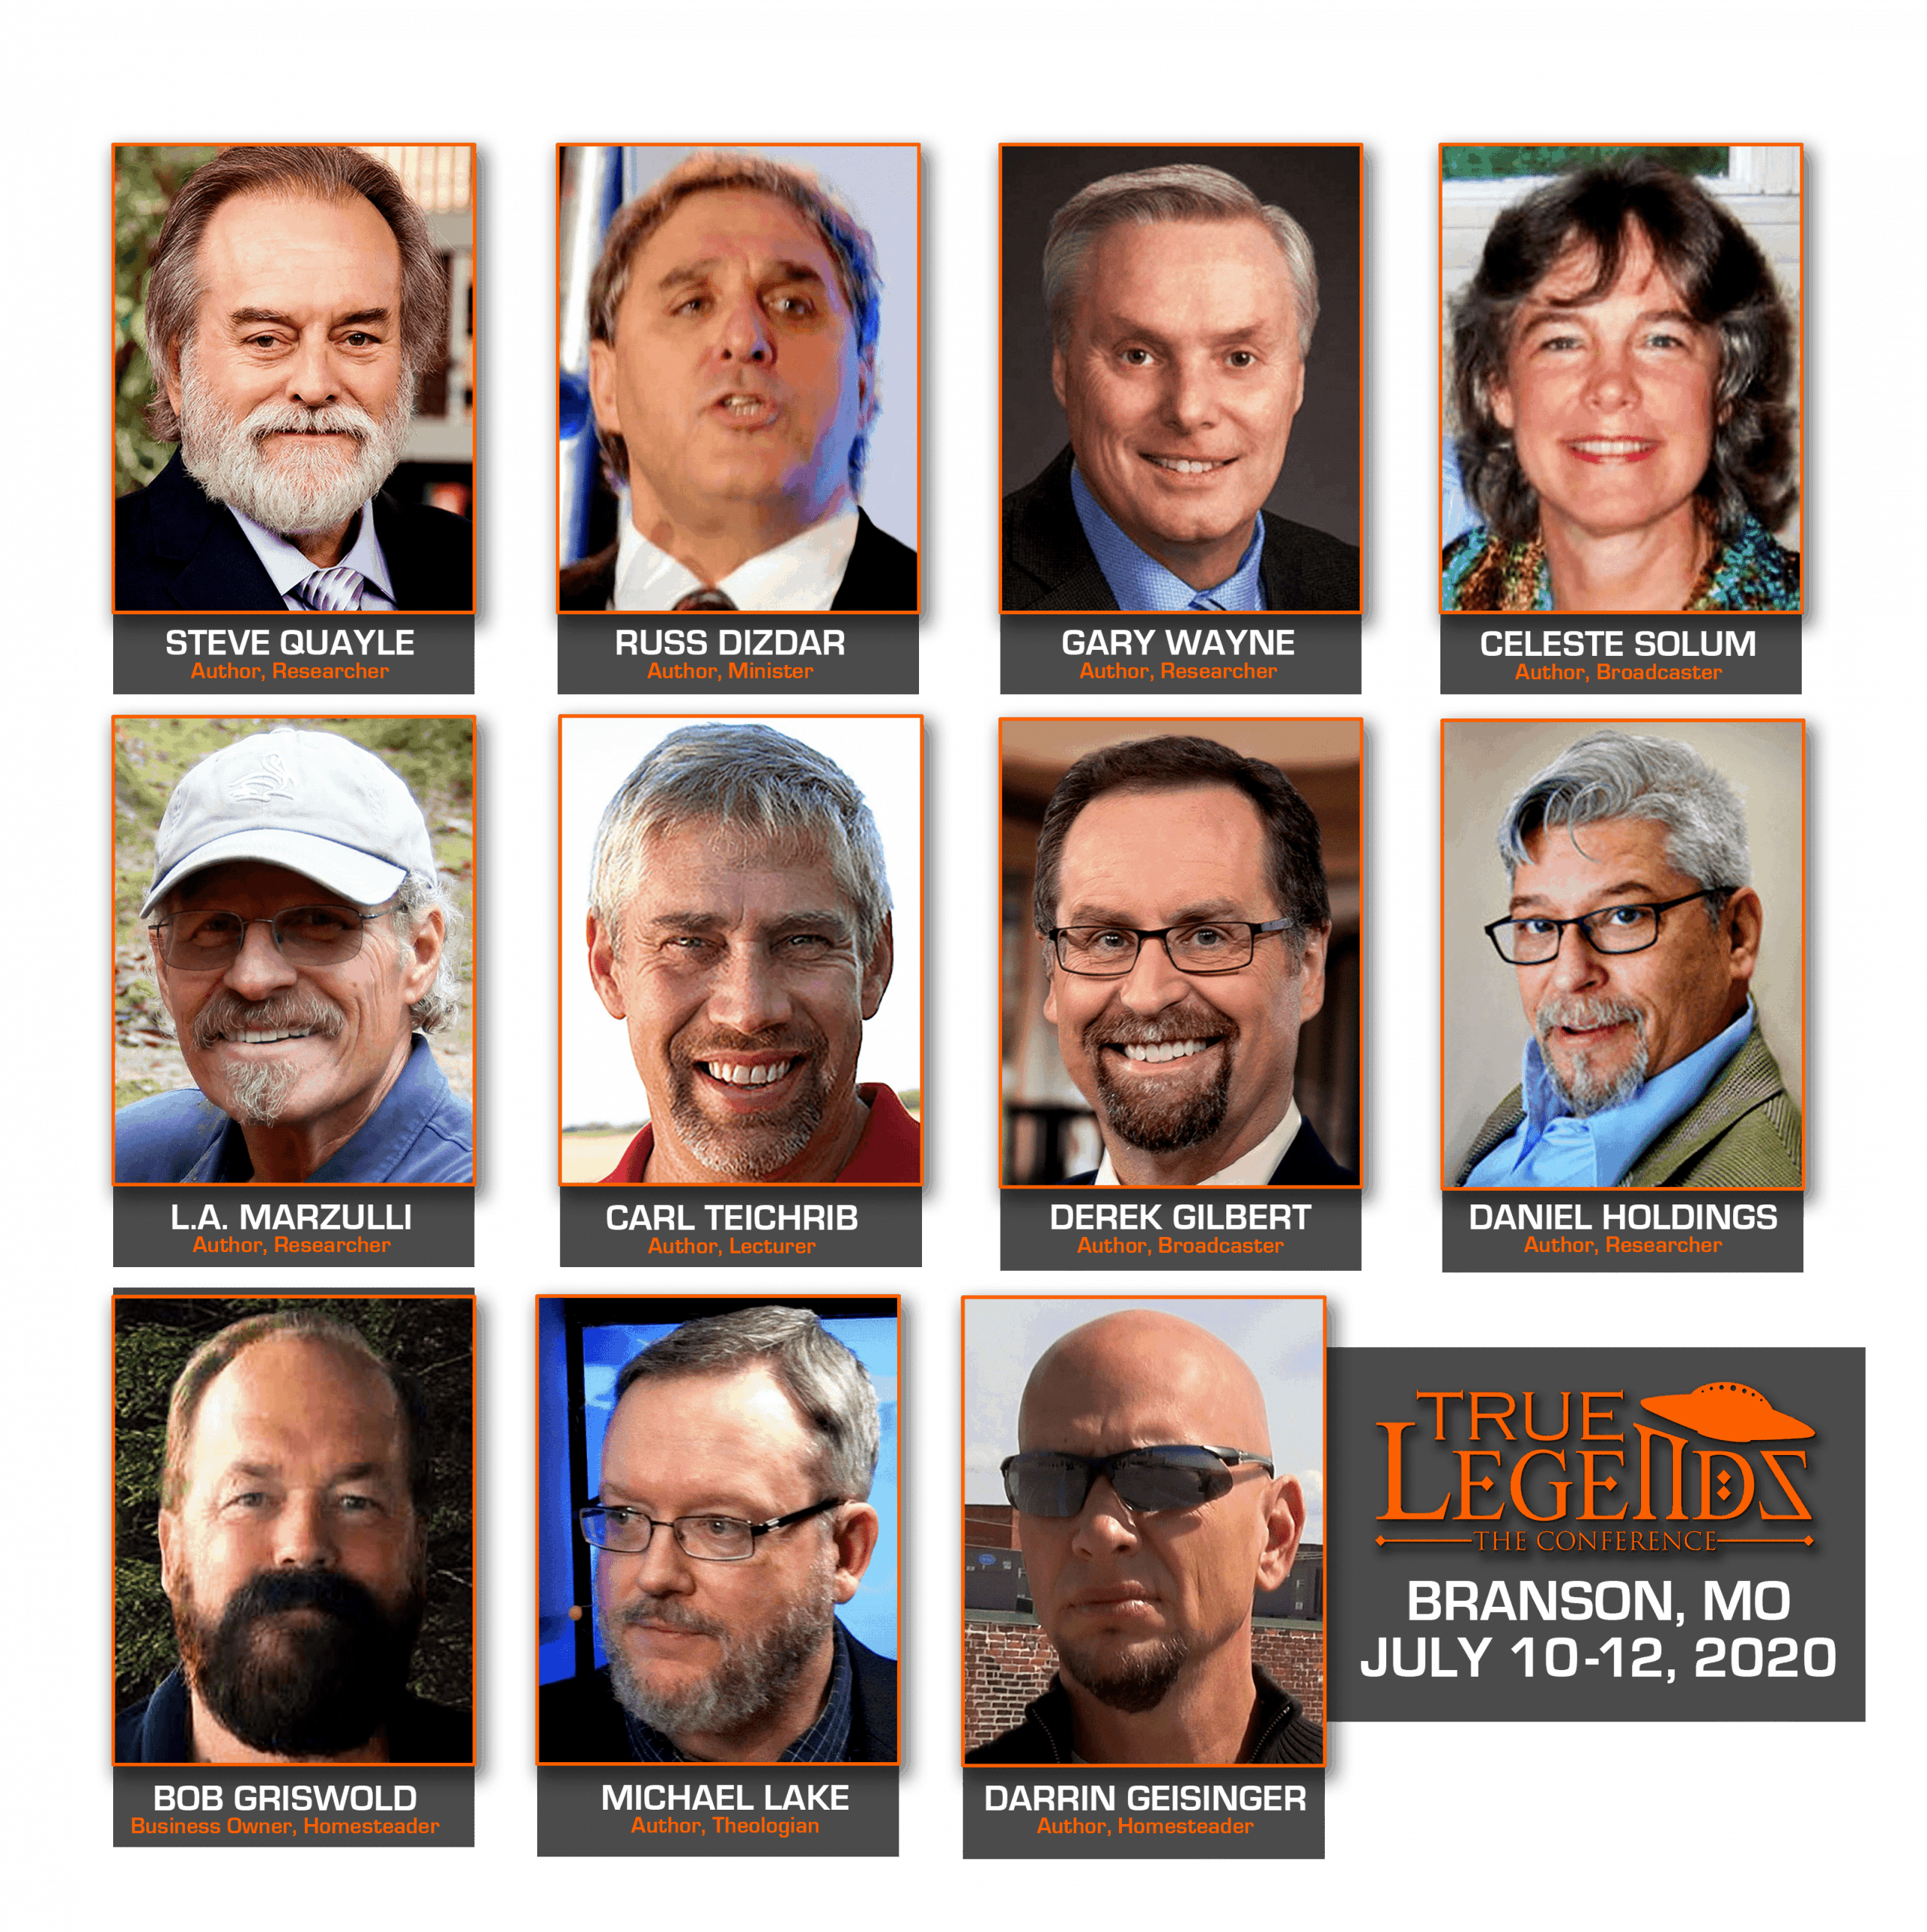 True Legends Conference 2020